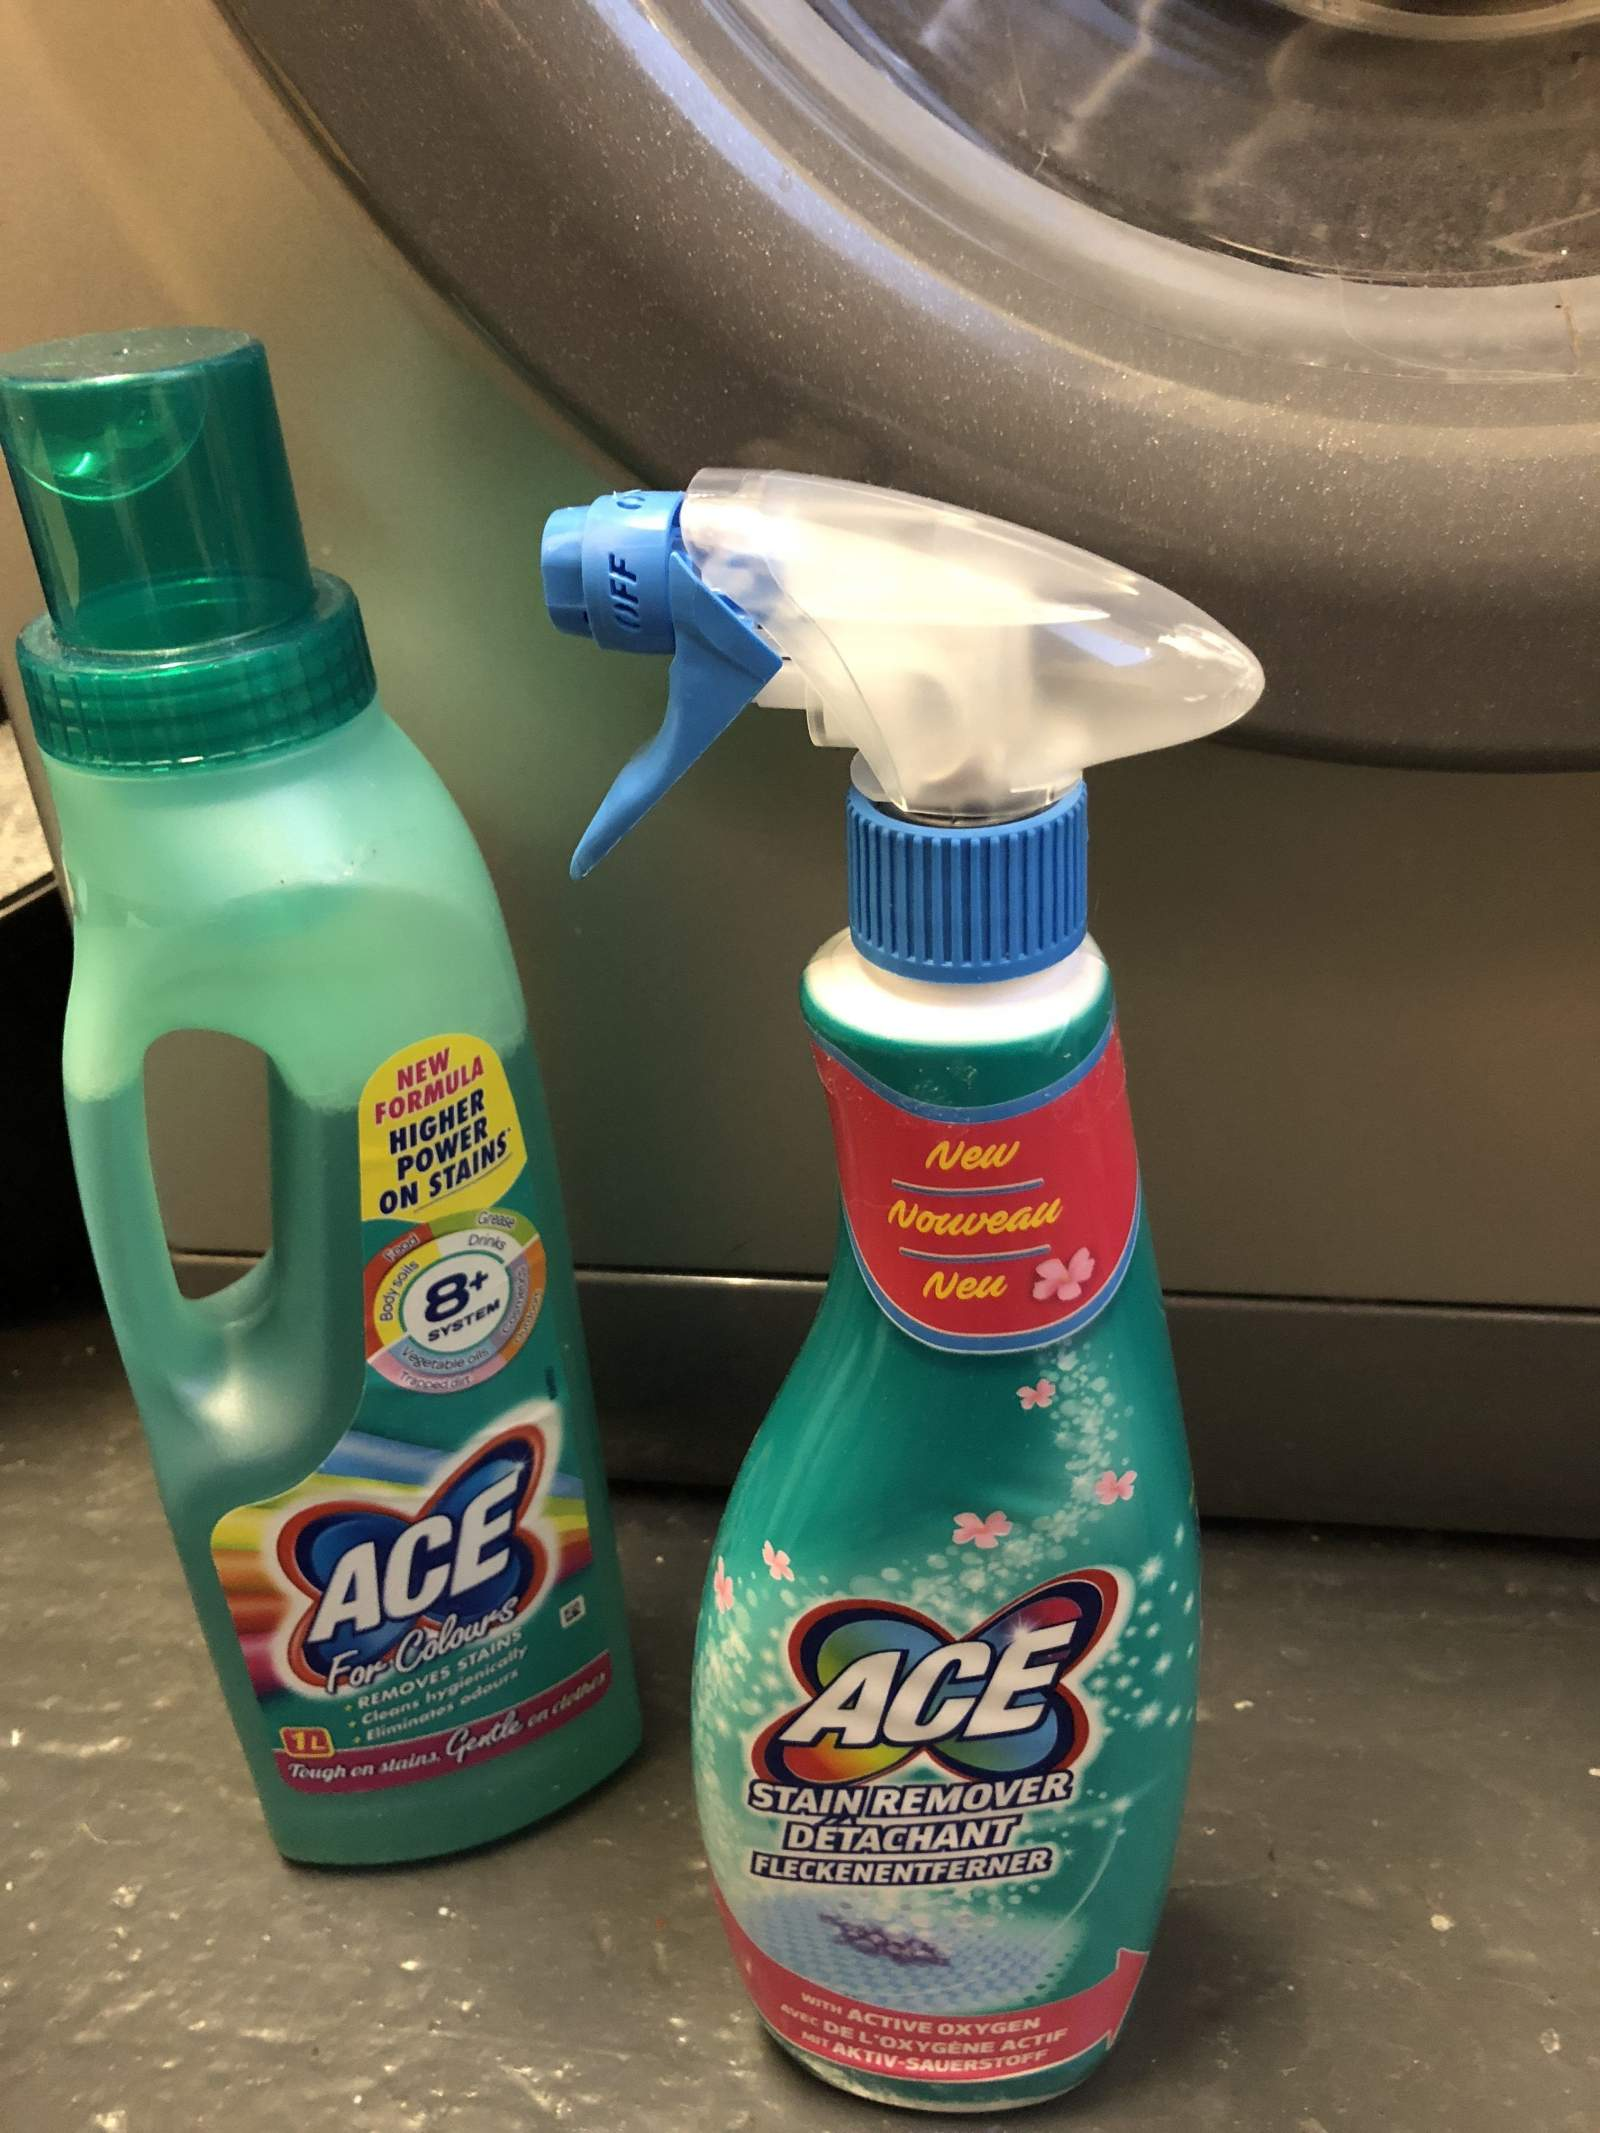 ace bottles in front of washing machine on grey floor